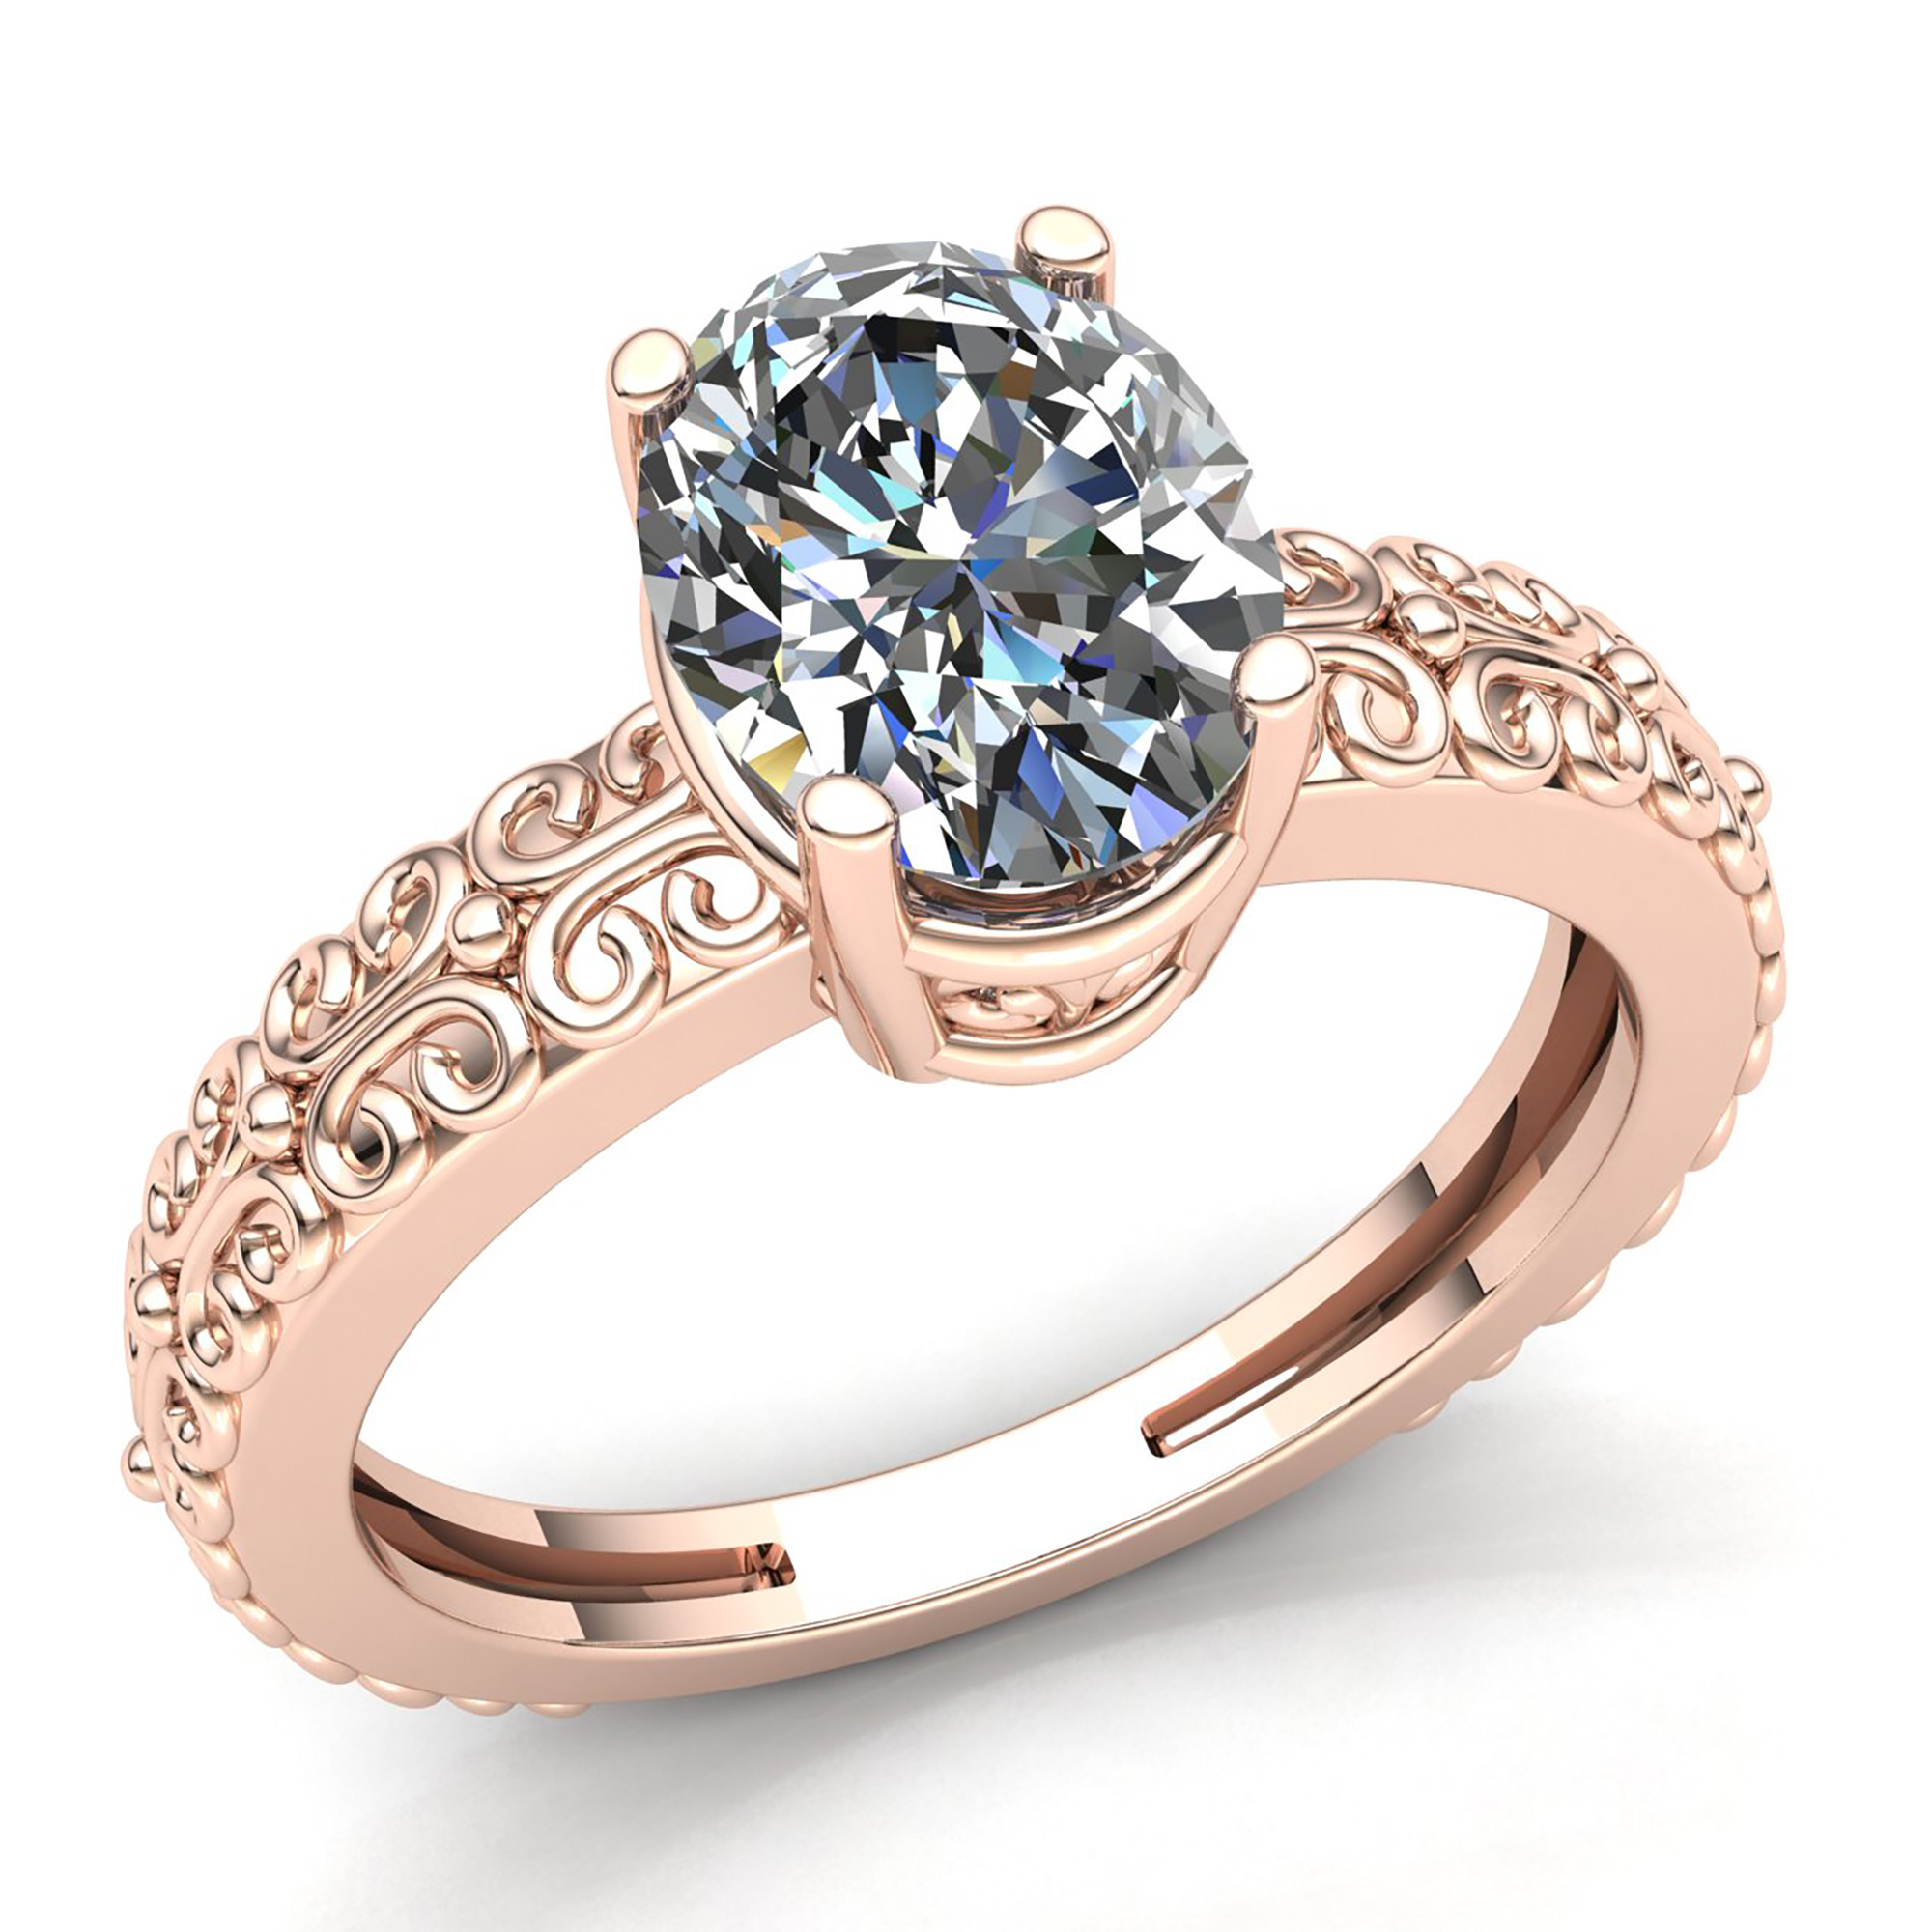 engagement diamond adel rosebud ring chefridi product finished adelchefridi oval rings